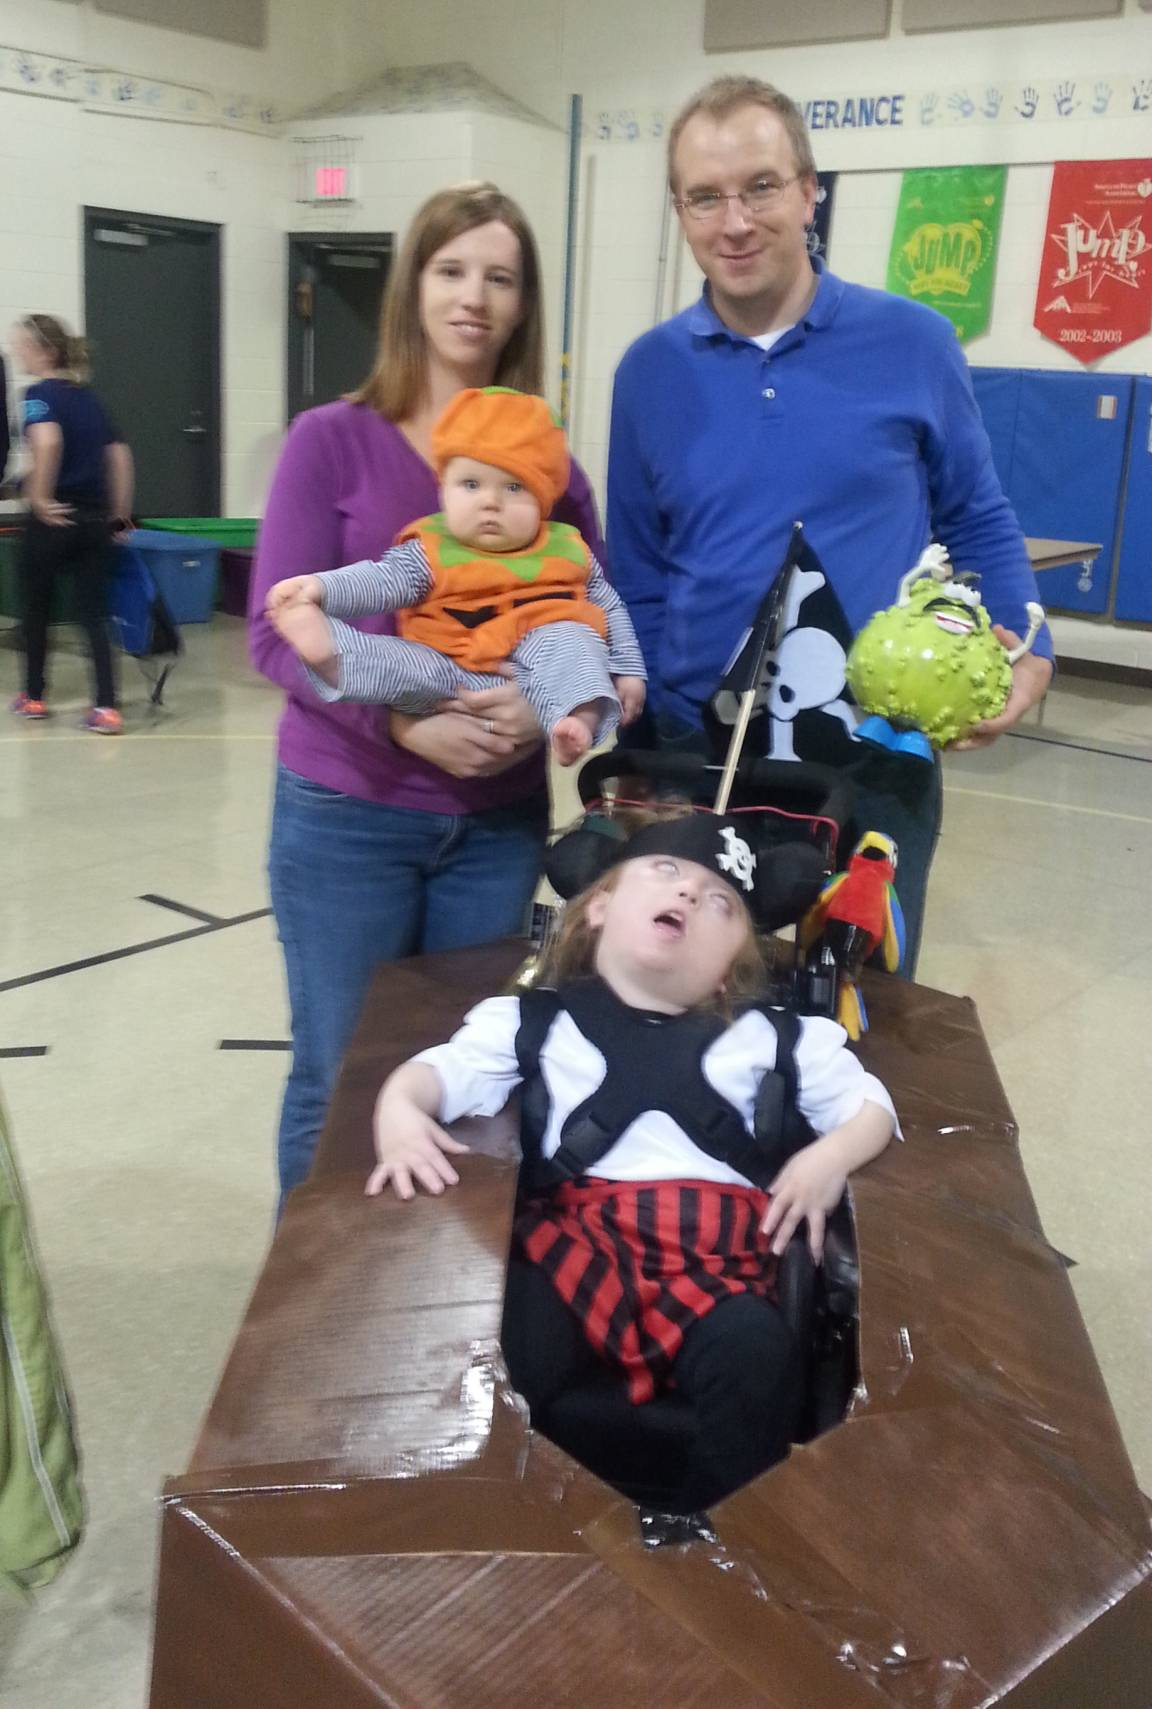 Using cardboard, duct tape and spray paint, Willie and Kelly Hedrick of Elk Grove Village turn the wheelchair used by their daughter, Kaitylyn, into an awesome pirate ship so she can celebrate Halloween with her little sister, Alyssa, wearing the pumpkin suit.